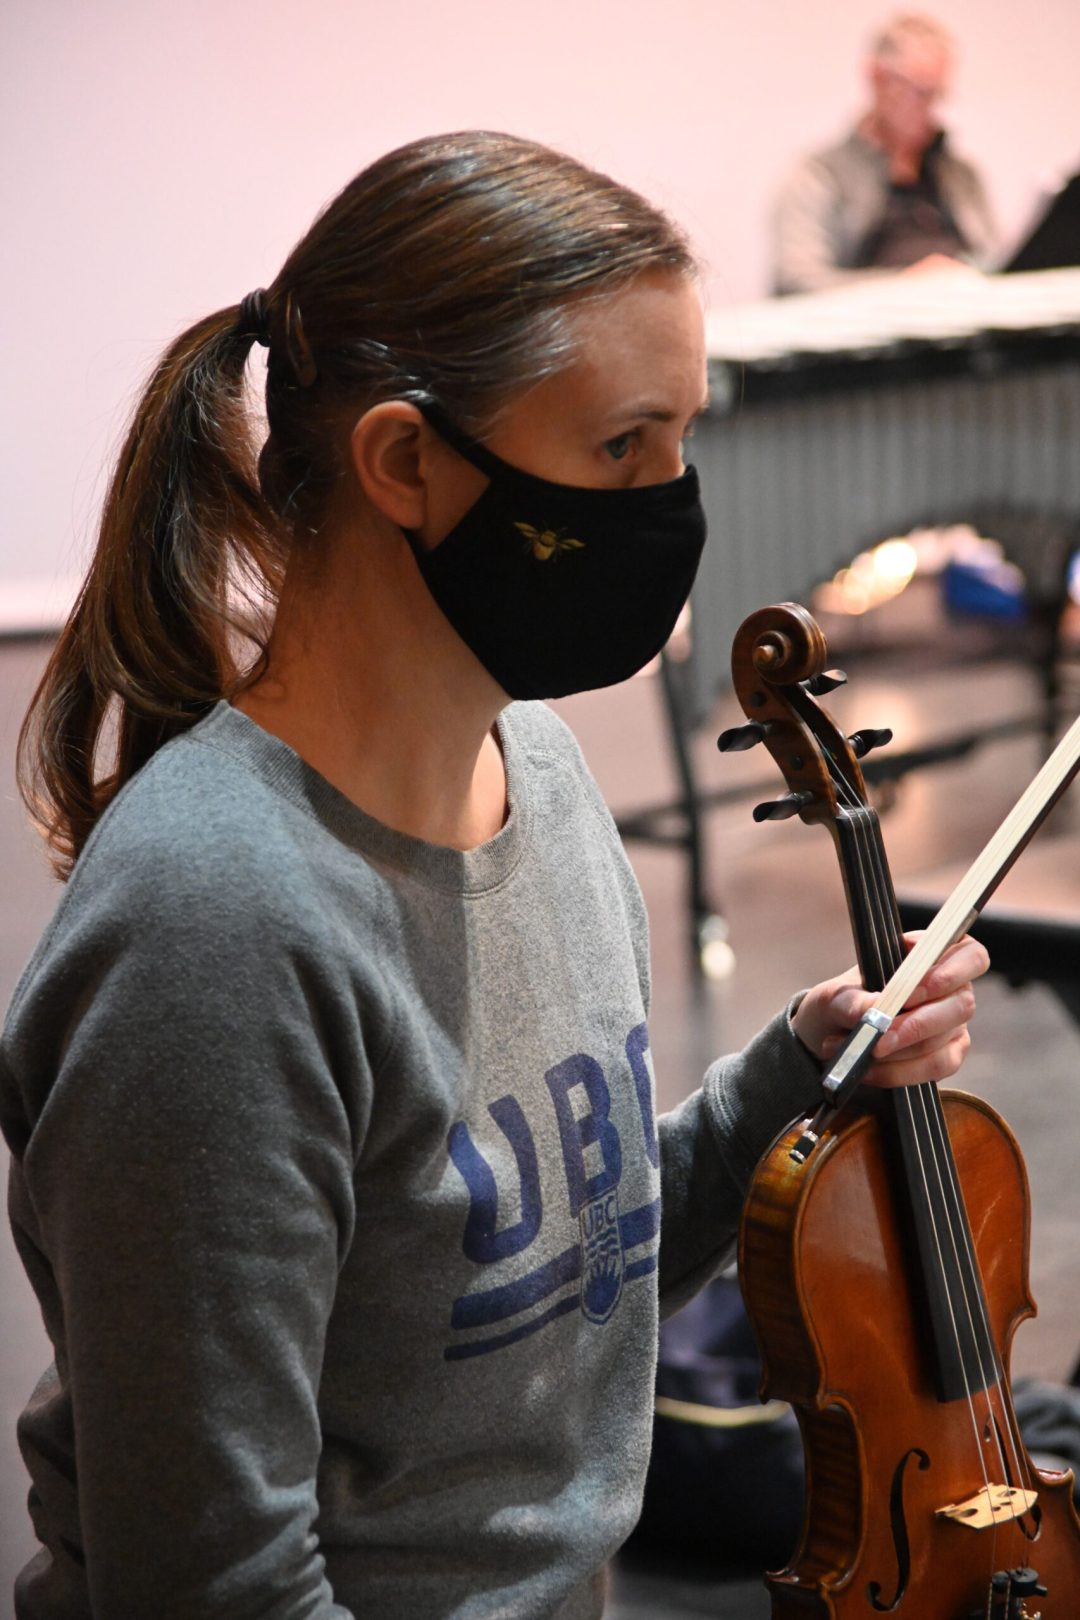 Sandra Wilmot in a mask, in rehearsal with her violin